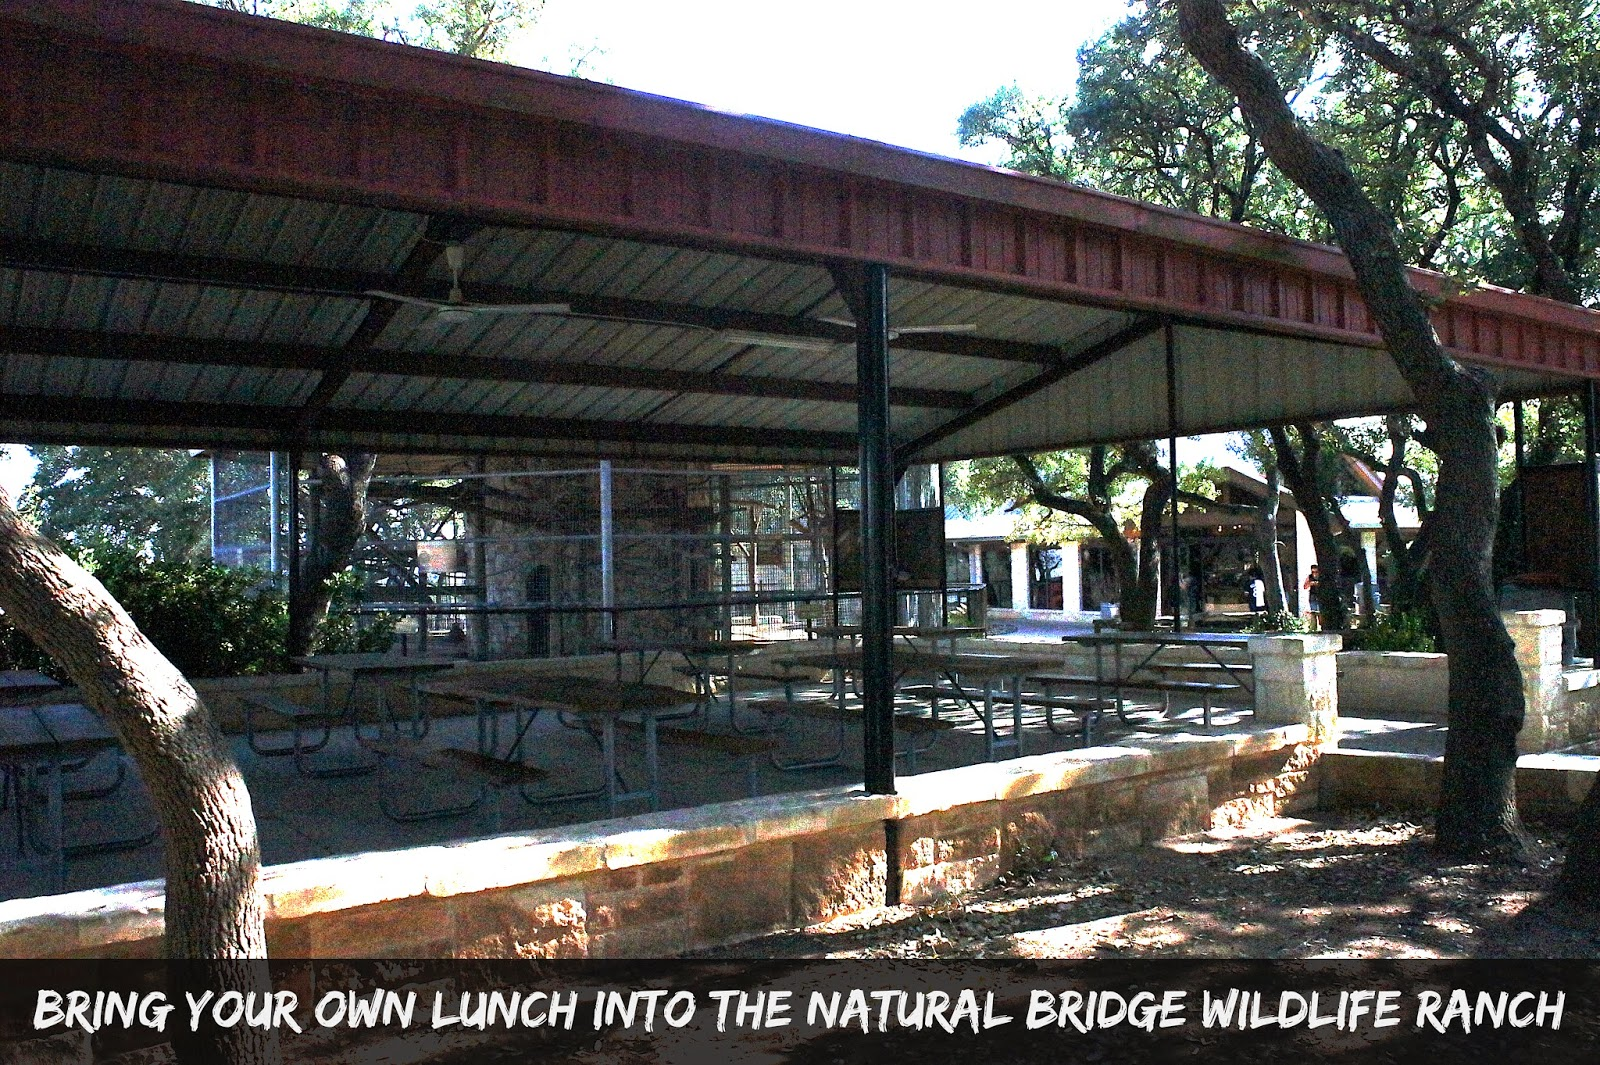 Family Picnics at the Natural Bridge Wildlife Ranch in San Antonio, Texas